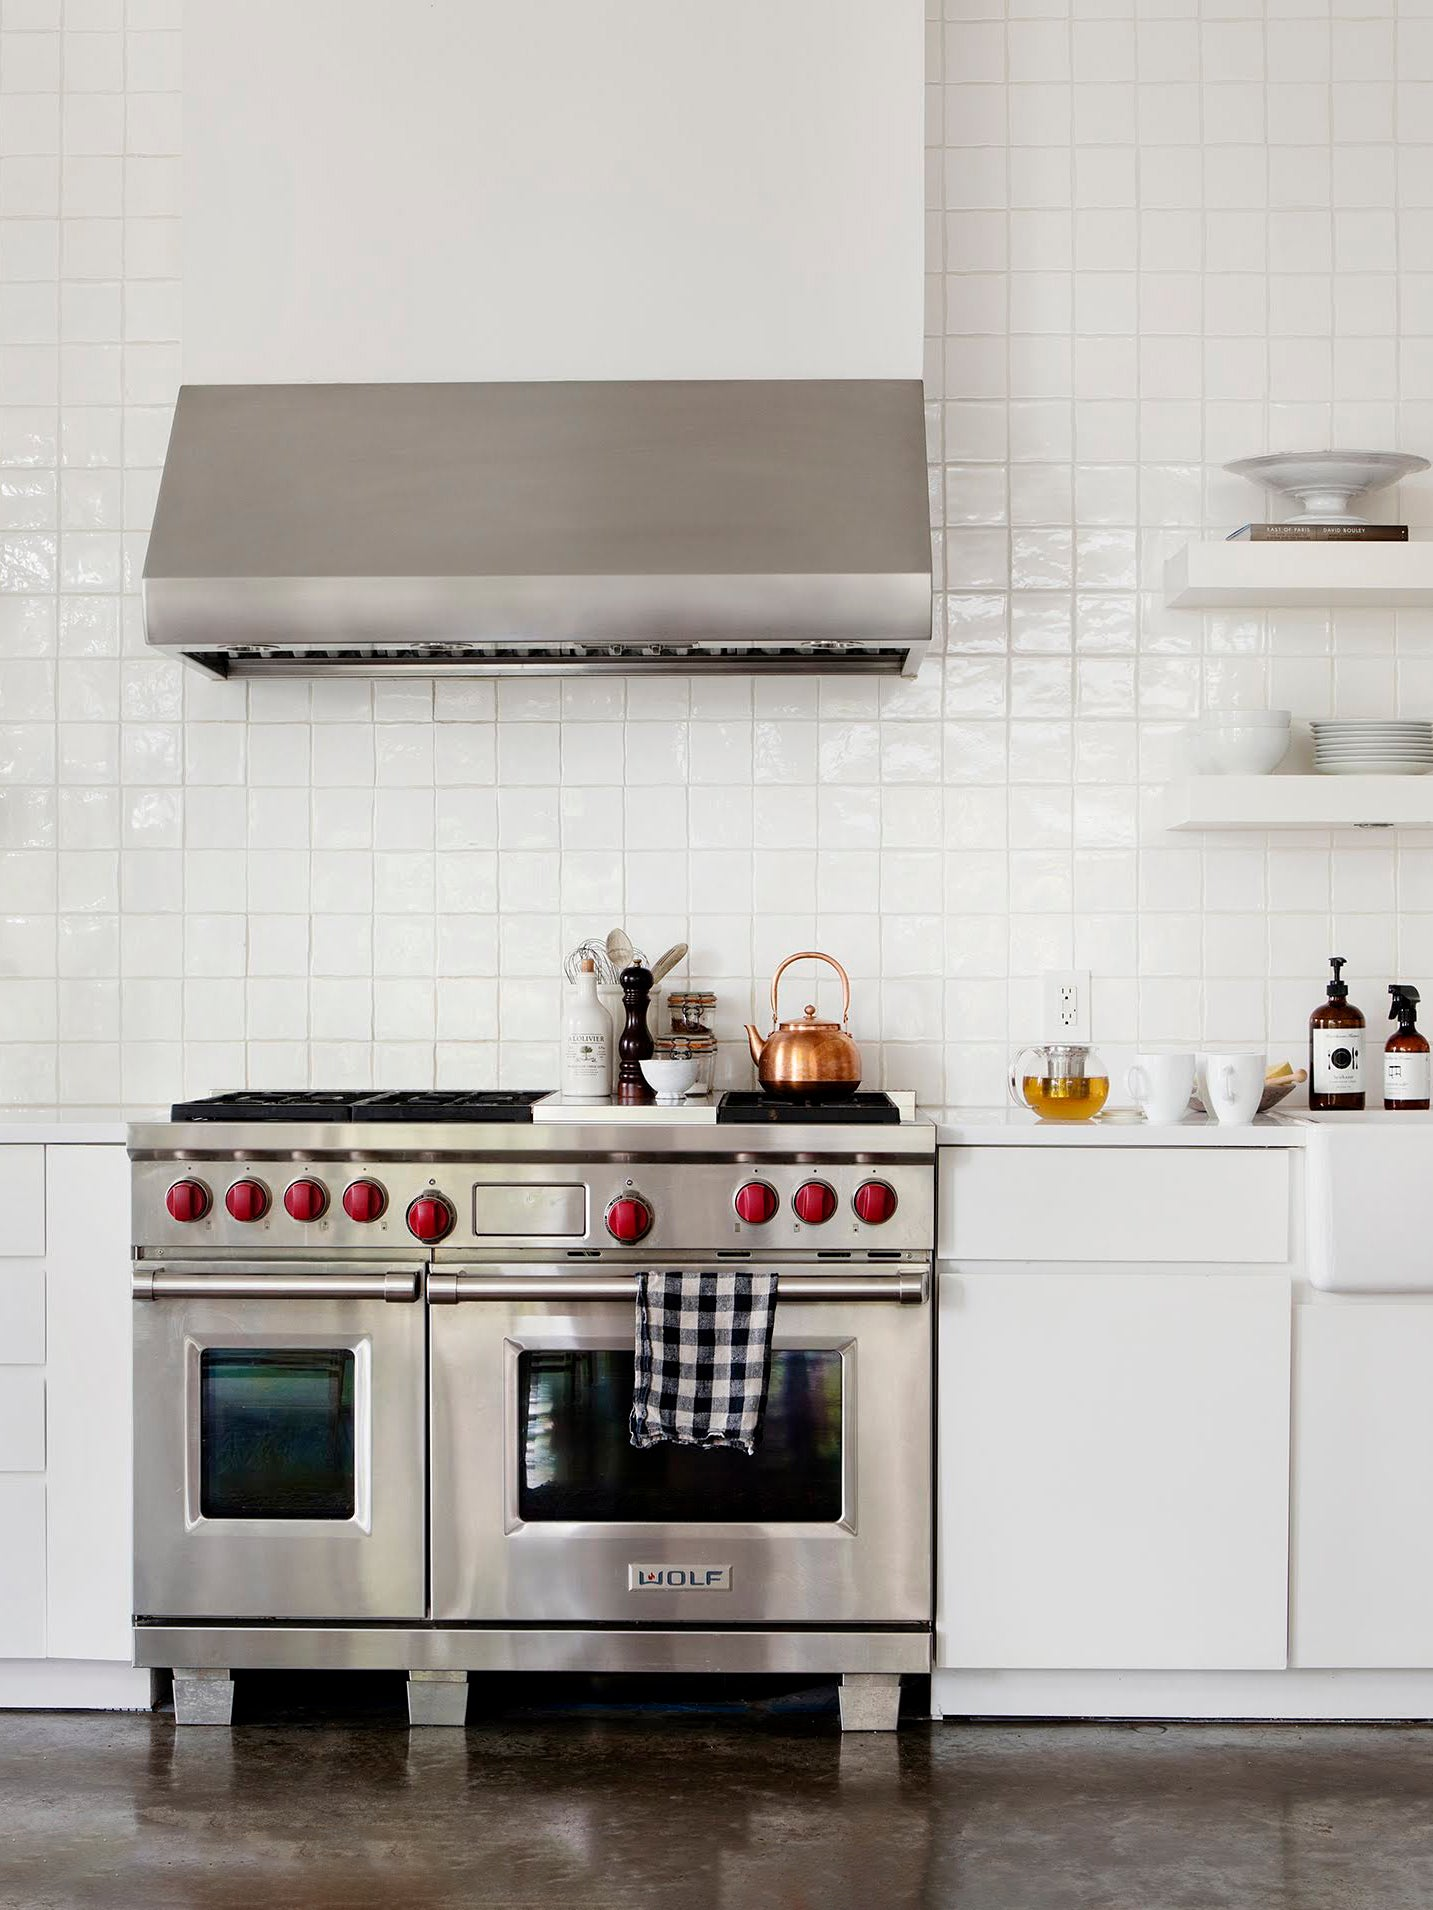 00-FEATURE-Culinista-cooking-tips-domino